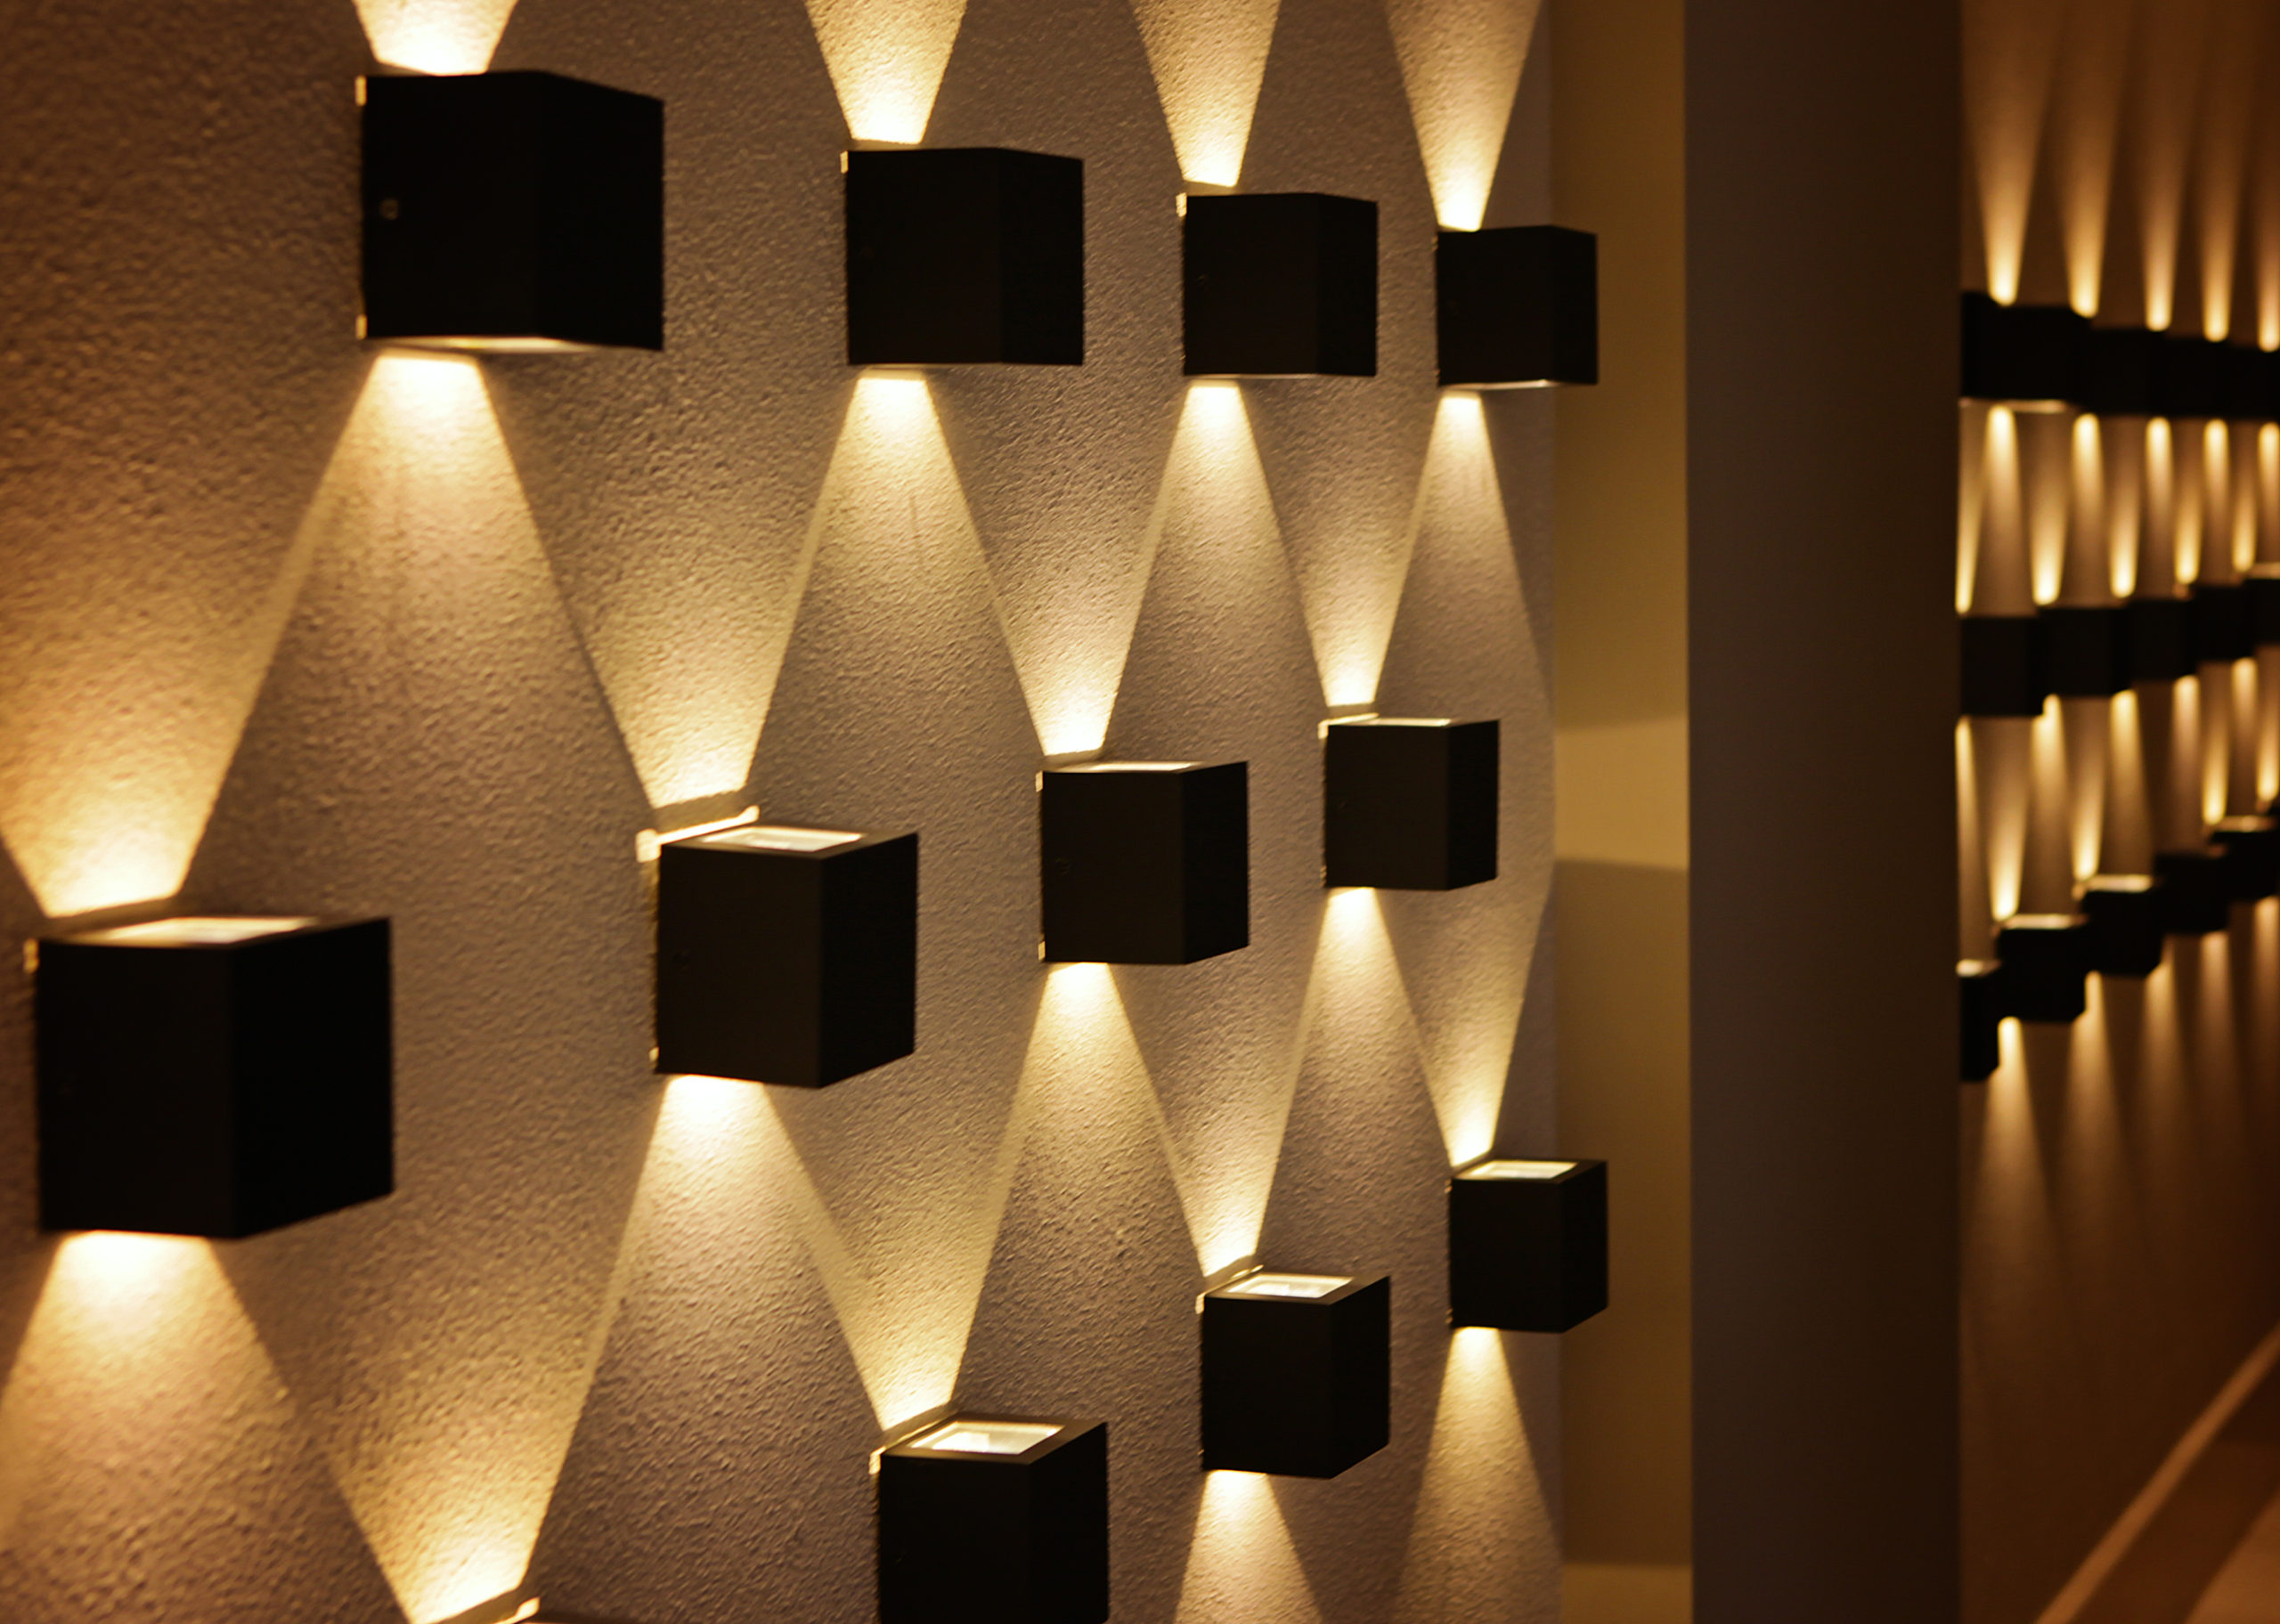 wall filled with cubed lights